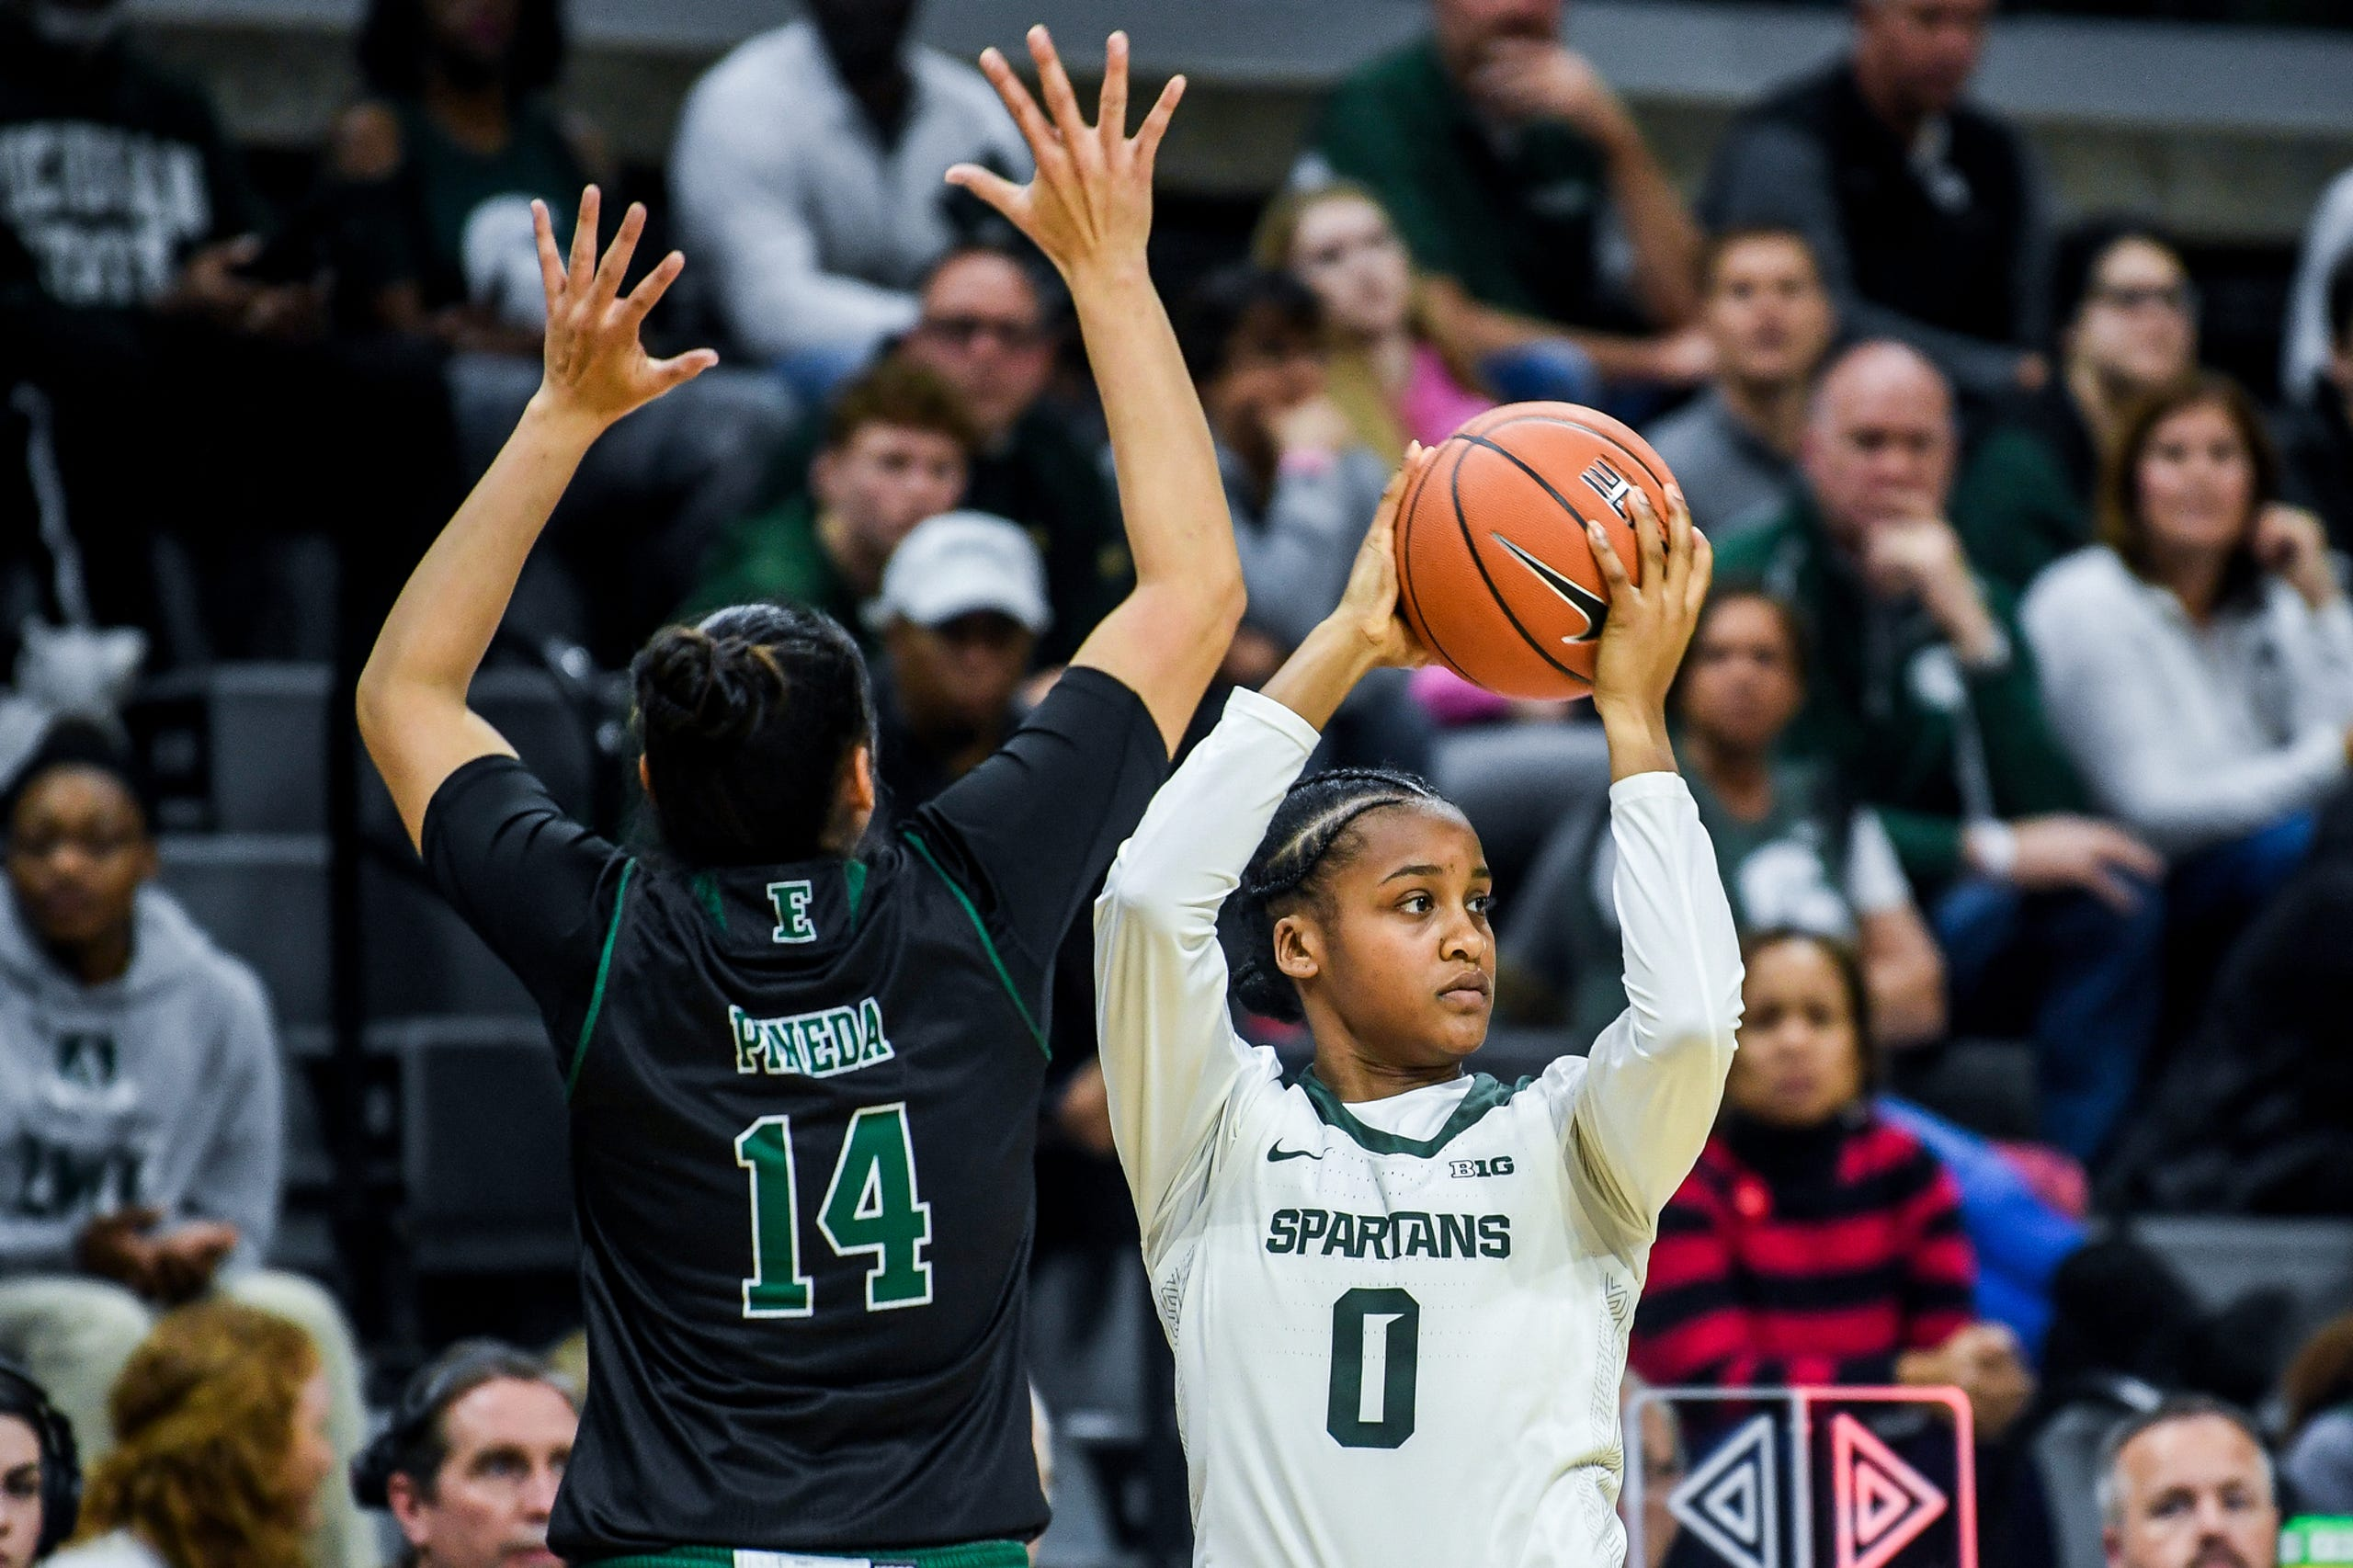 Michigan State's Shay Colley, right, looks to pass as Eastern Michigan's Natalia Pineda defends during the second quarter on Tuesday, Nov. 5, 2019, at the Breslin Center in East Lansing.